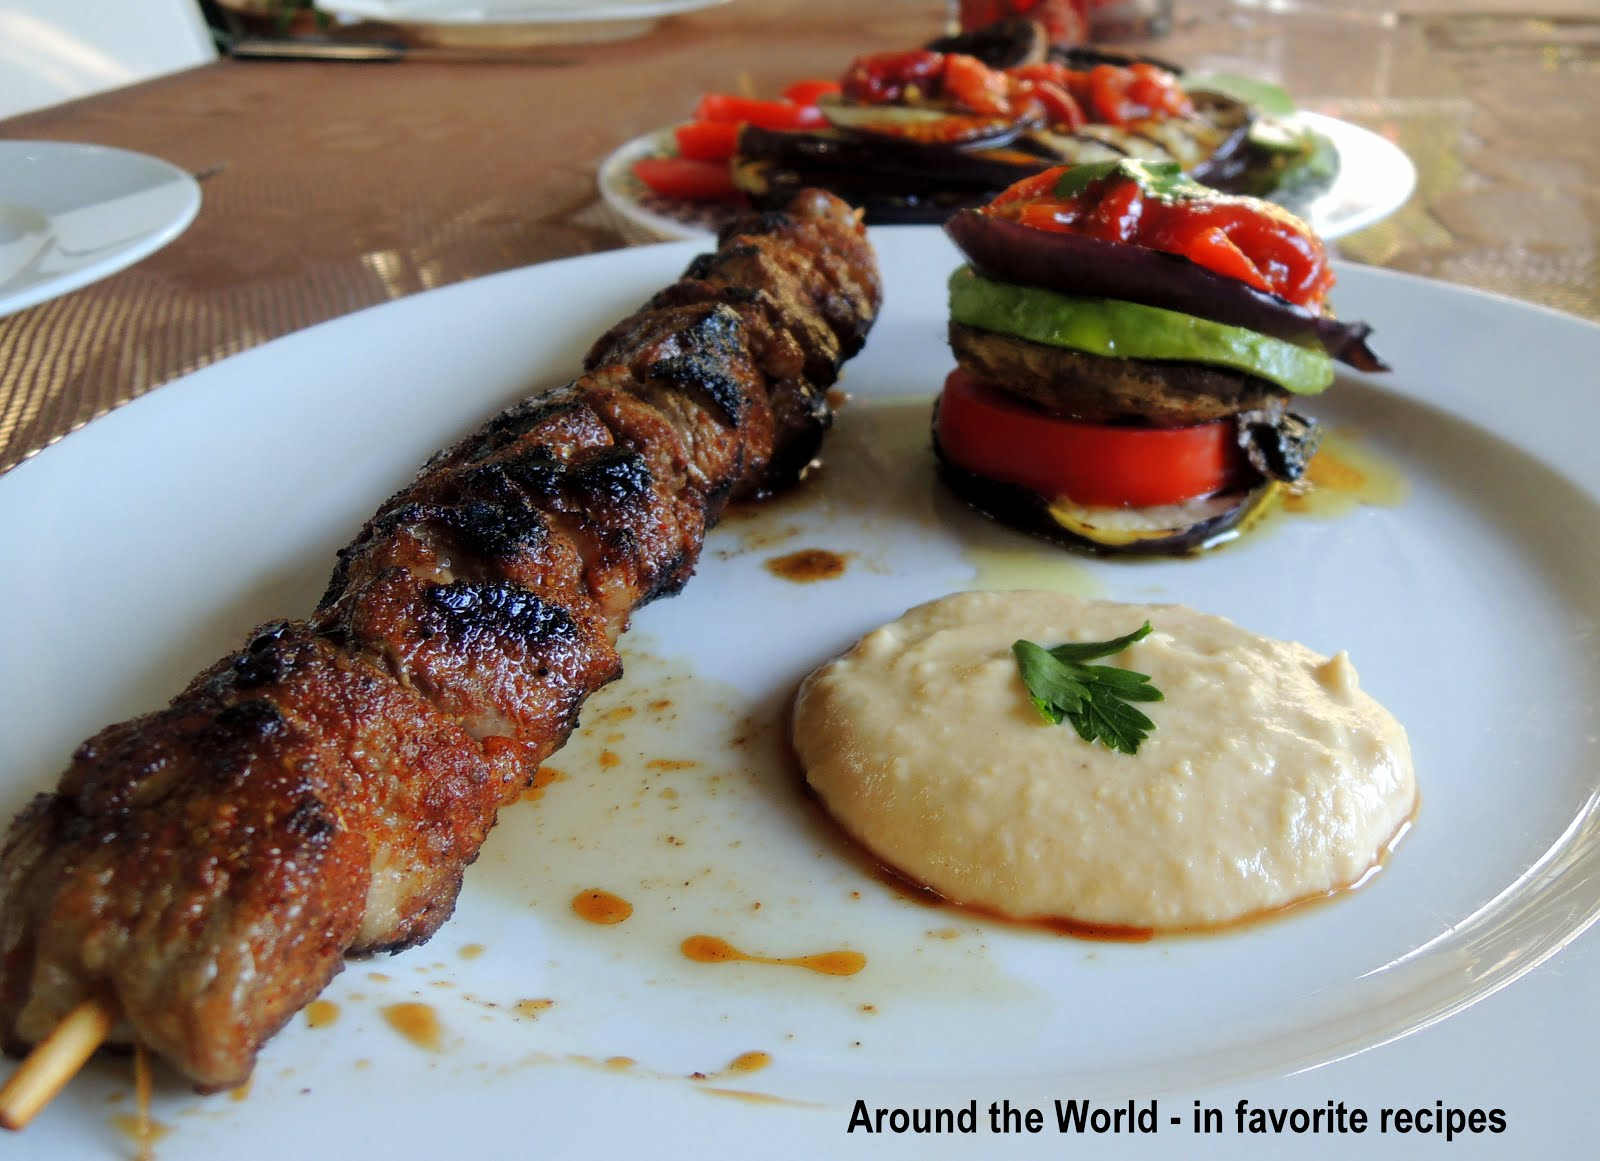 Around the World - in favorite recipes: Meats and Mains